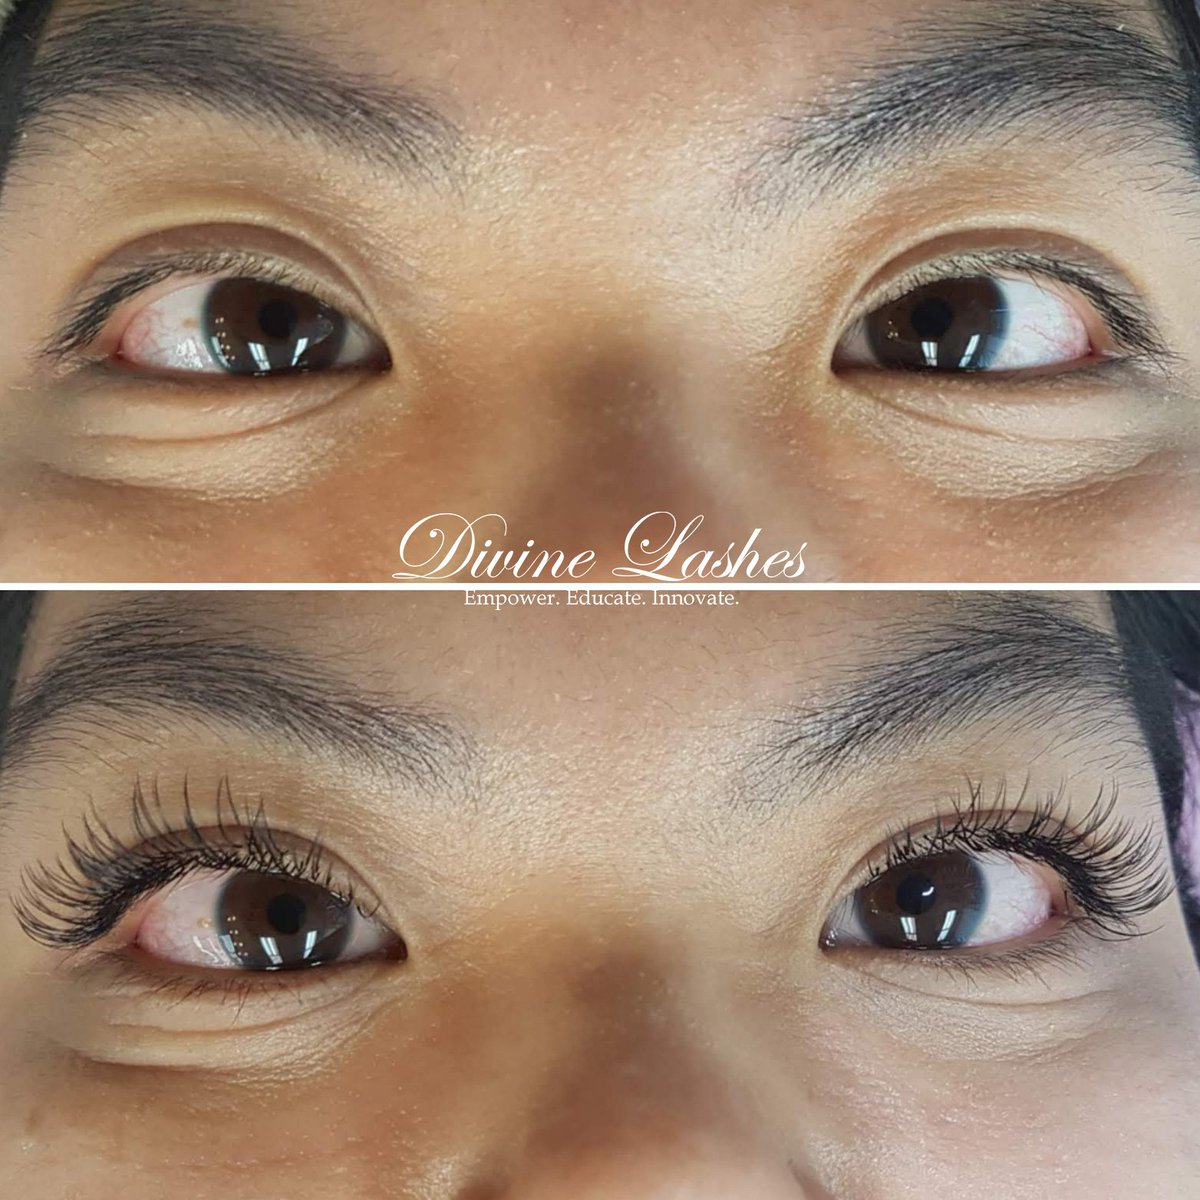 d3502f95eb9 Divine Lashes on Twitter: